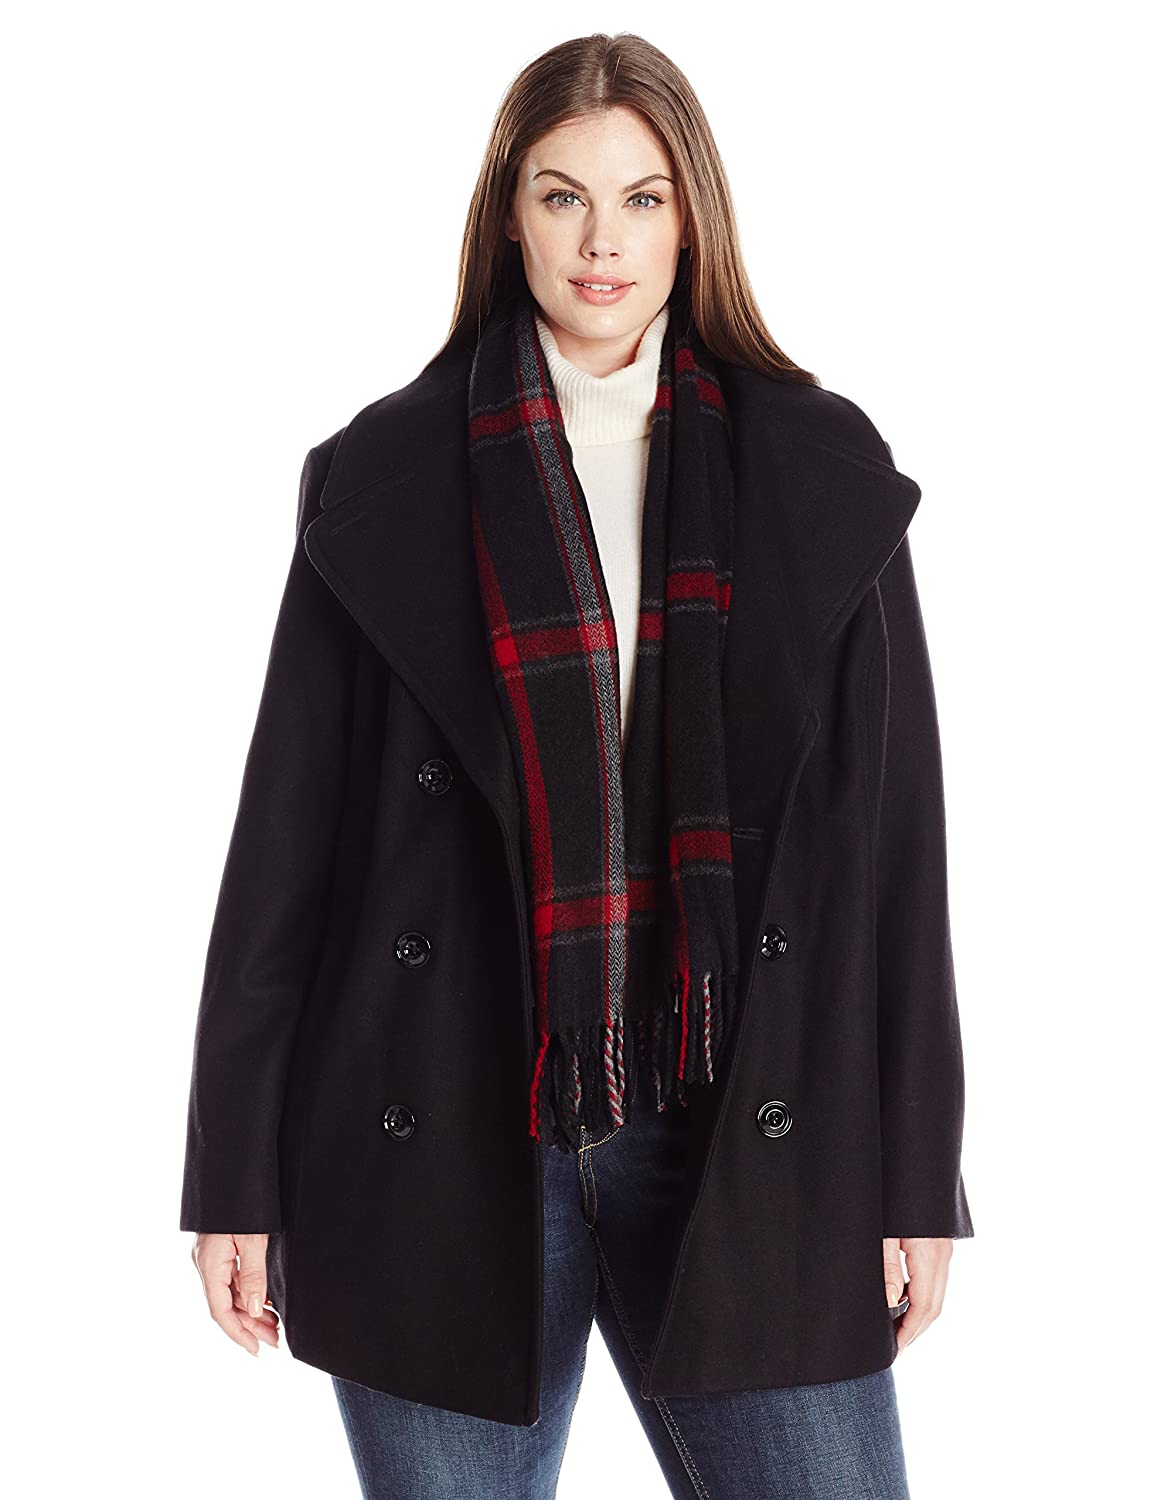 London Fog Women's Plus Size Double Breasted Peacoat with Scarf Black 1X L161608T93